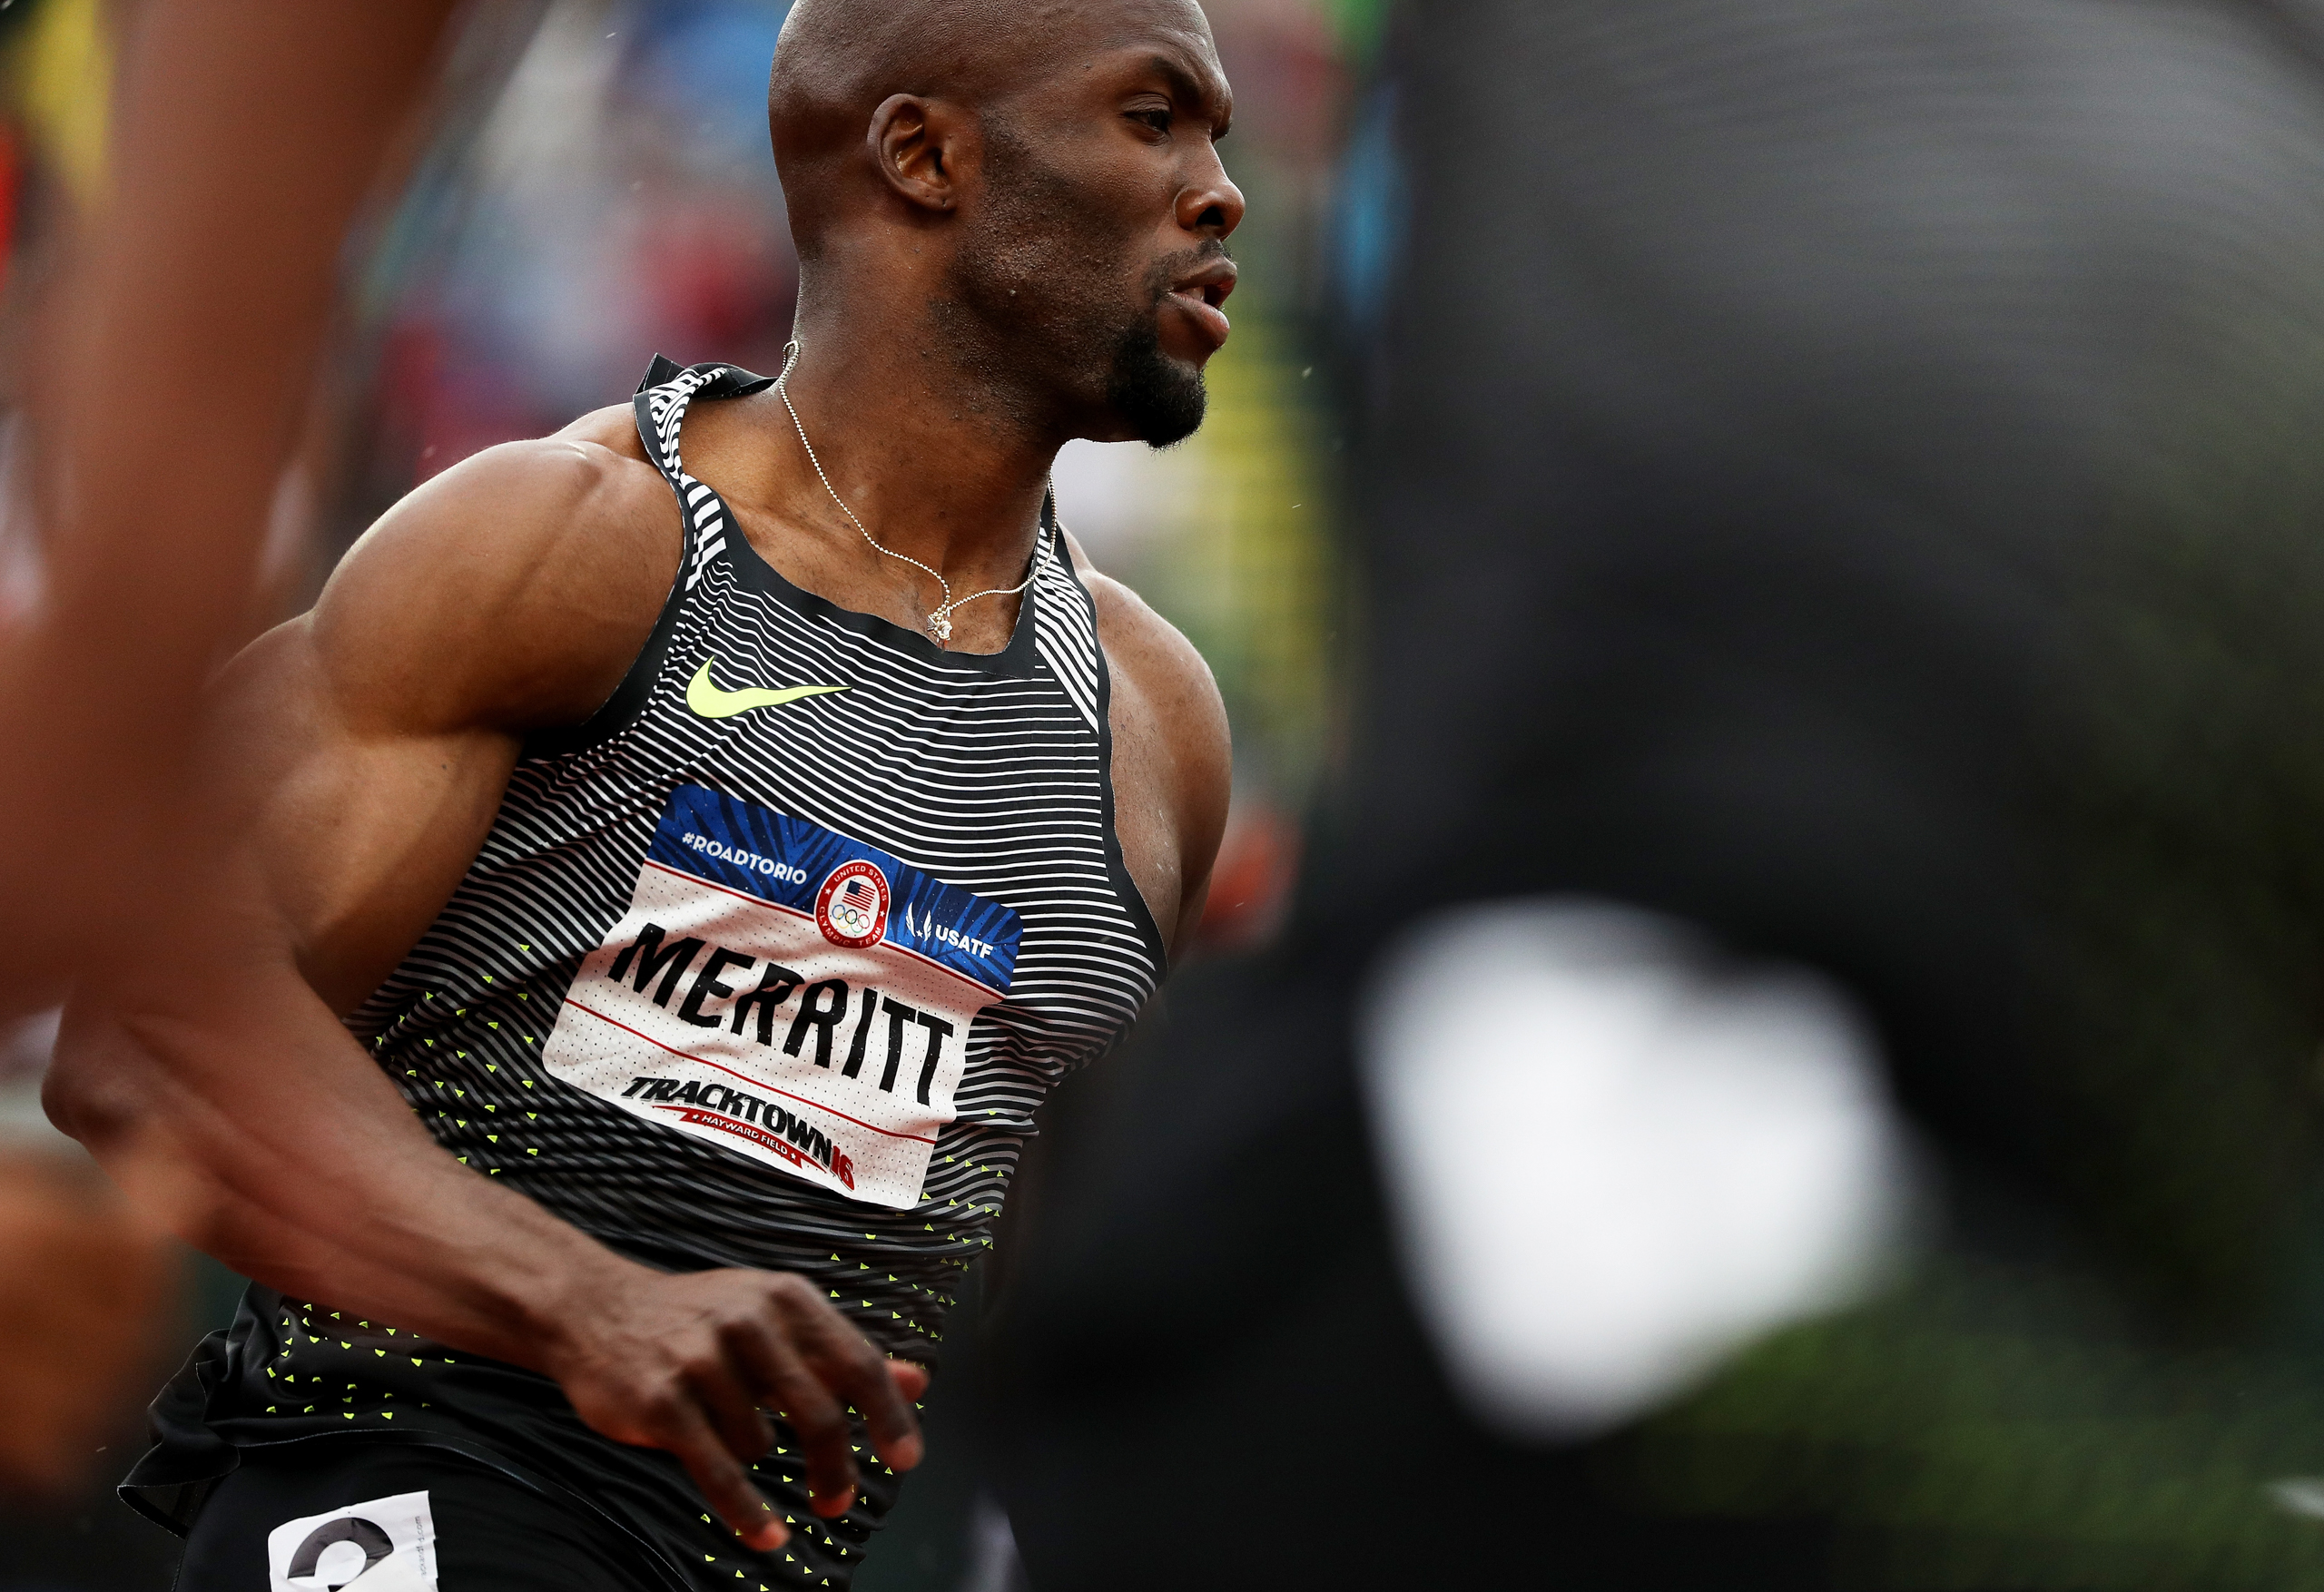 <strong>LaShawn Merritt, Track and Field, USA</strong>Merritt won the 400-m gold in 2008, but a strained hamstring took him out of contention in 2012. After running the year's fastest time at the U.S. trials, he's on pace for redemption in Rio.